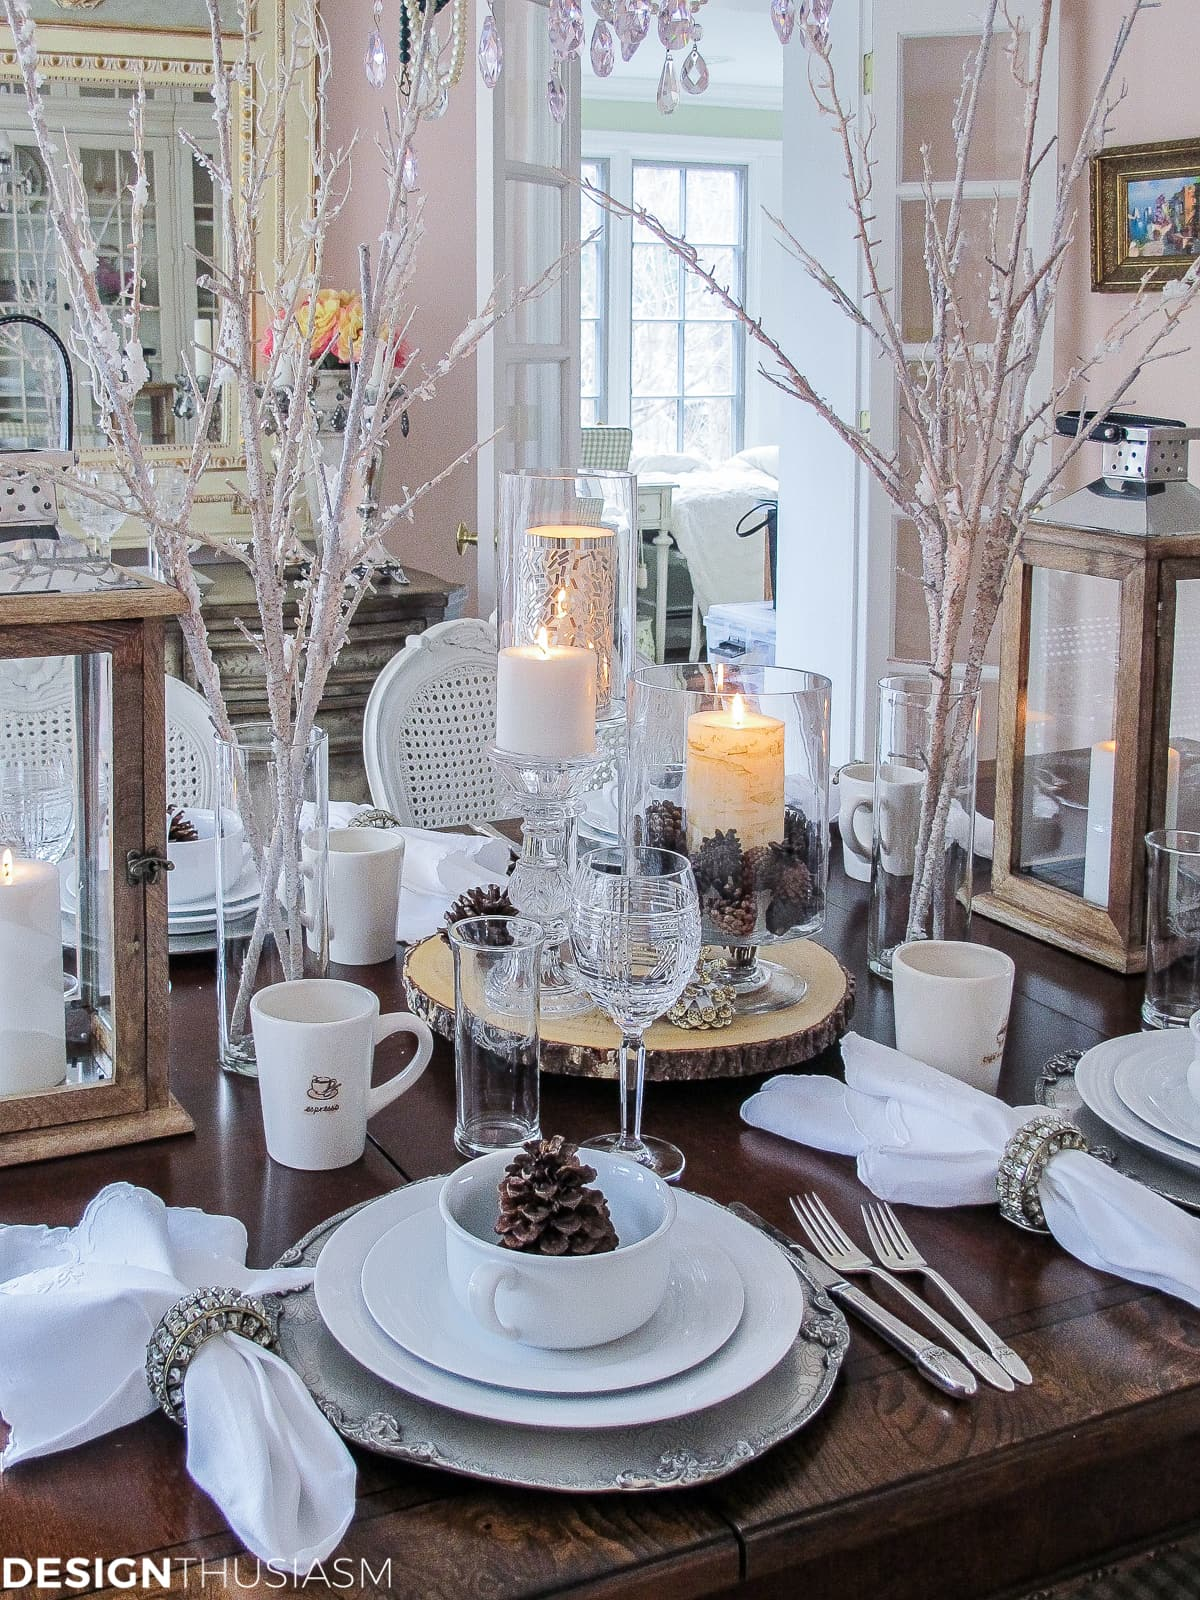 White Tablescape Comes Alive with Winter Decorations   Designthuisasm.com